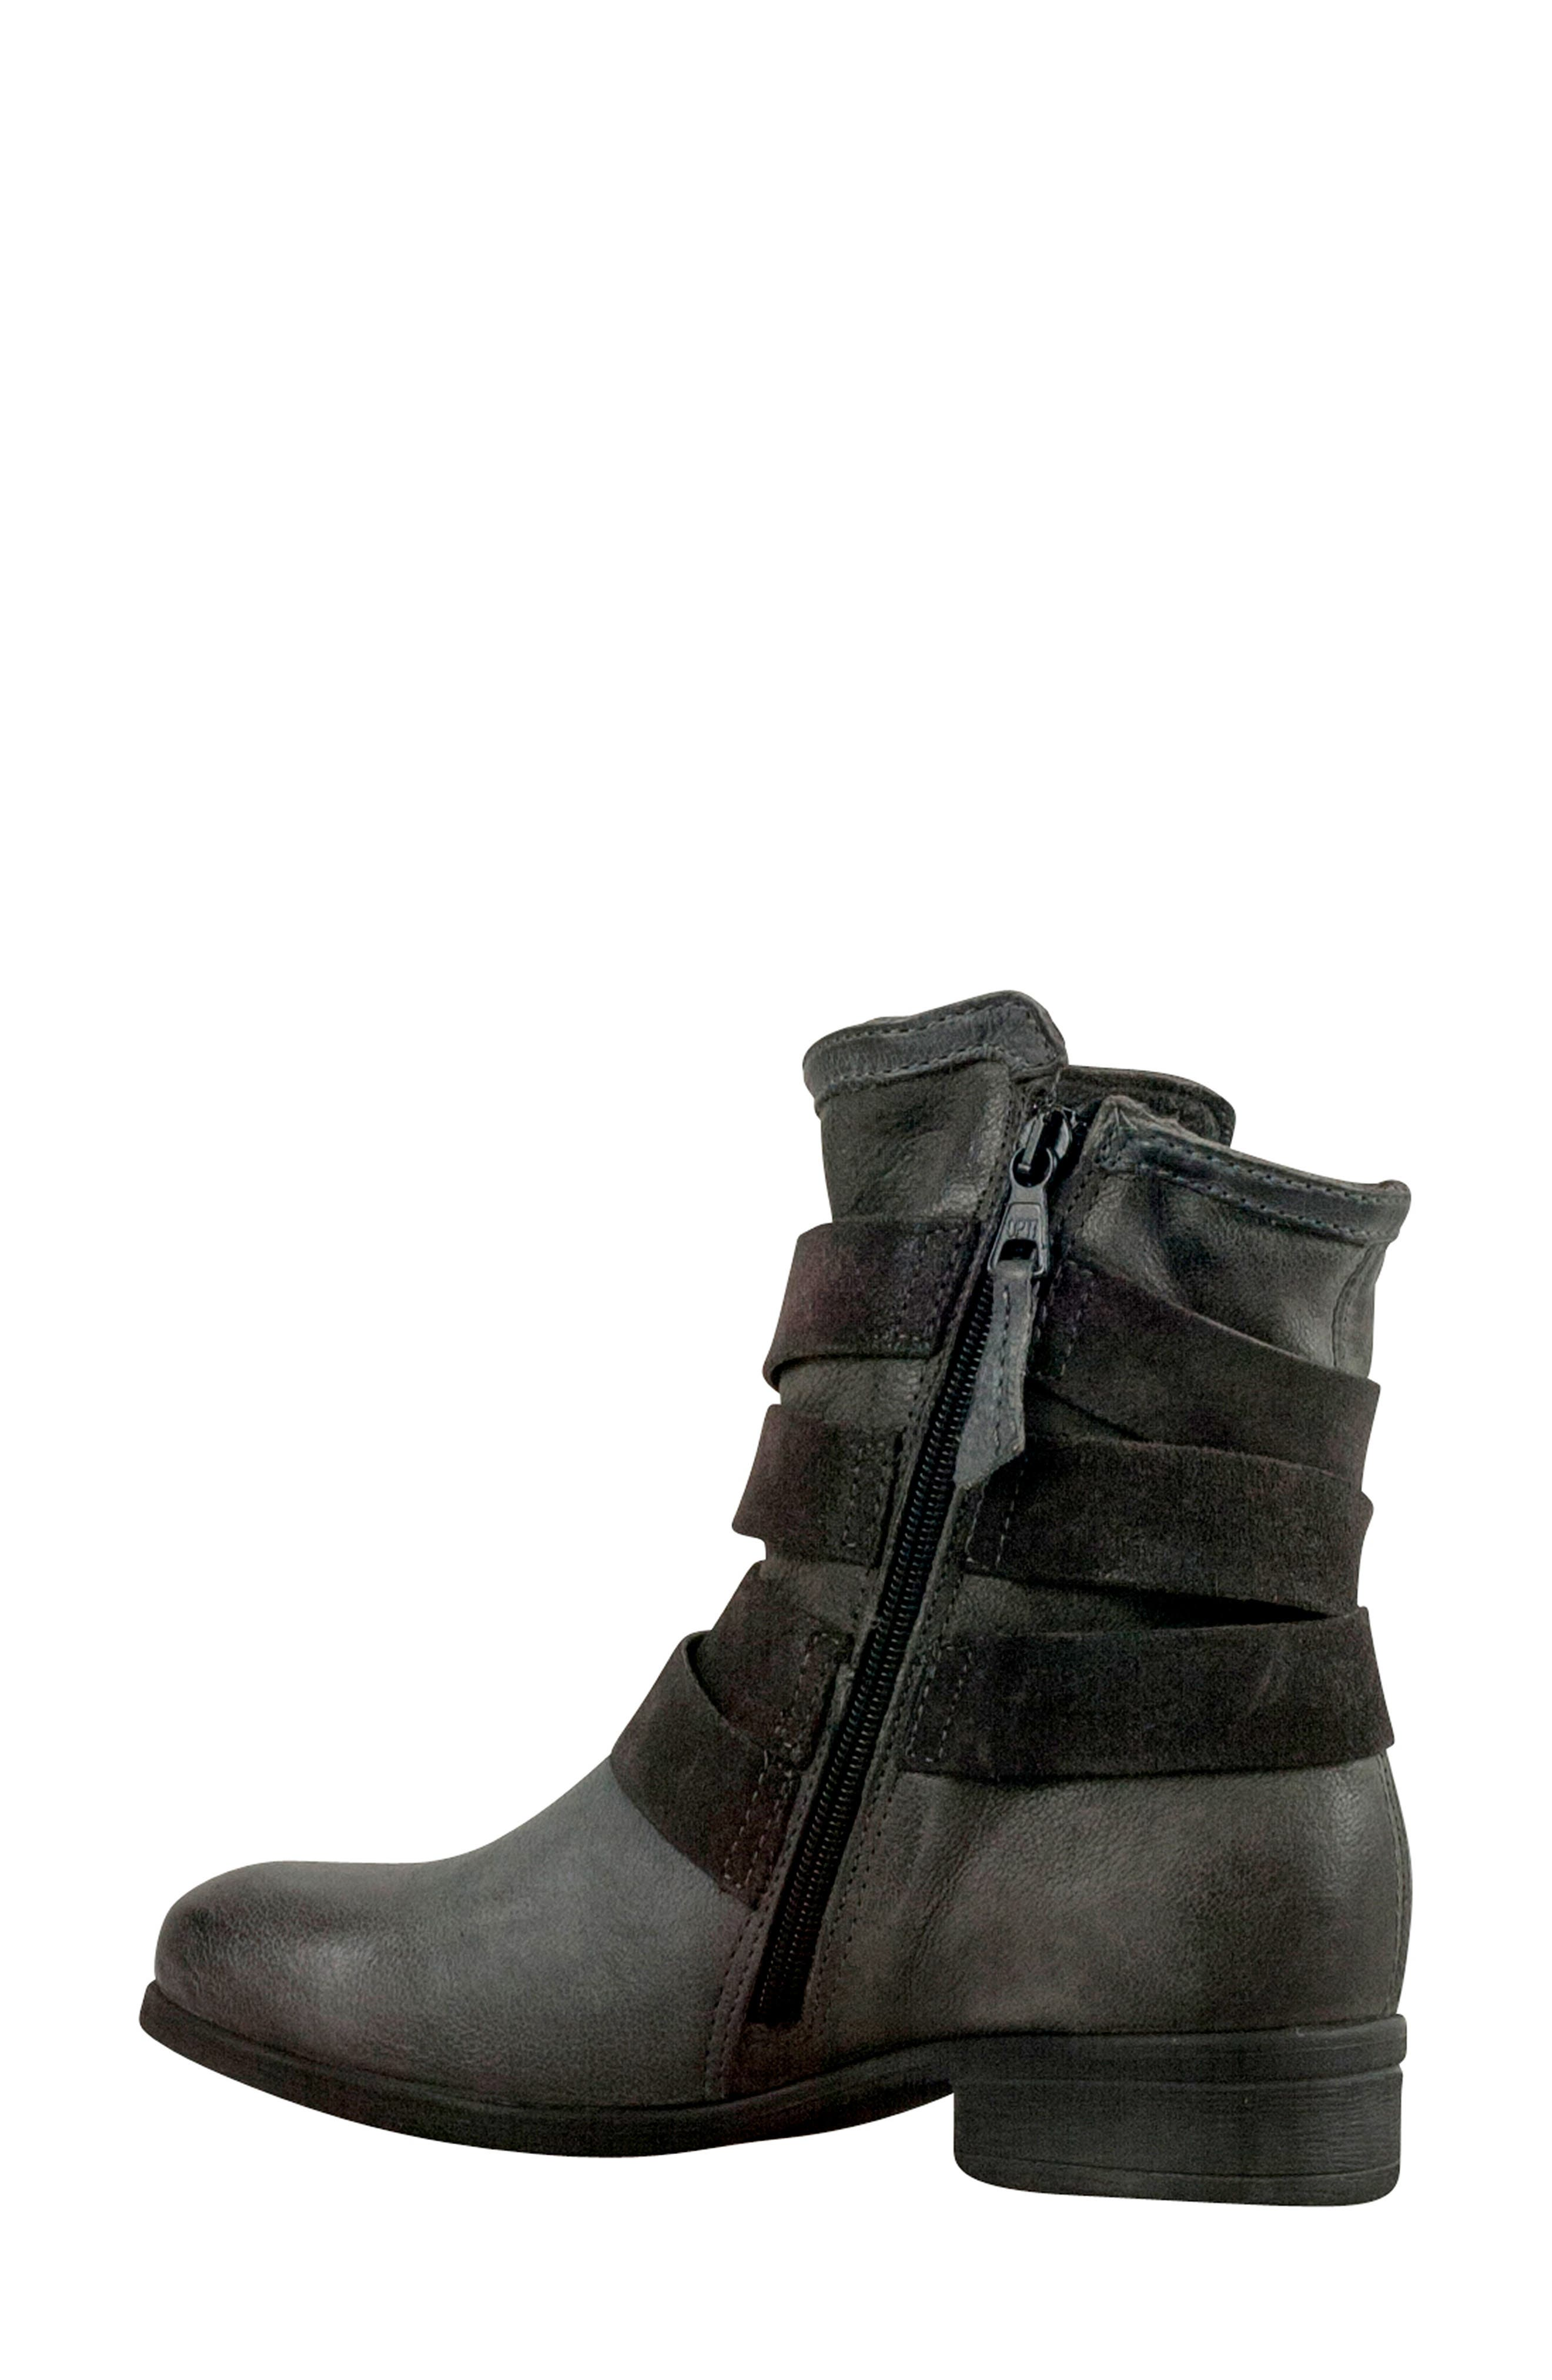 Savvy Buckle Bootie,                             Alternate thumbnail 2, color,                             GRANITE LEATHER